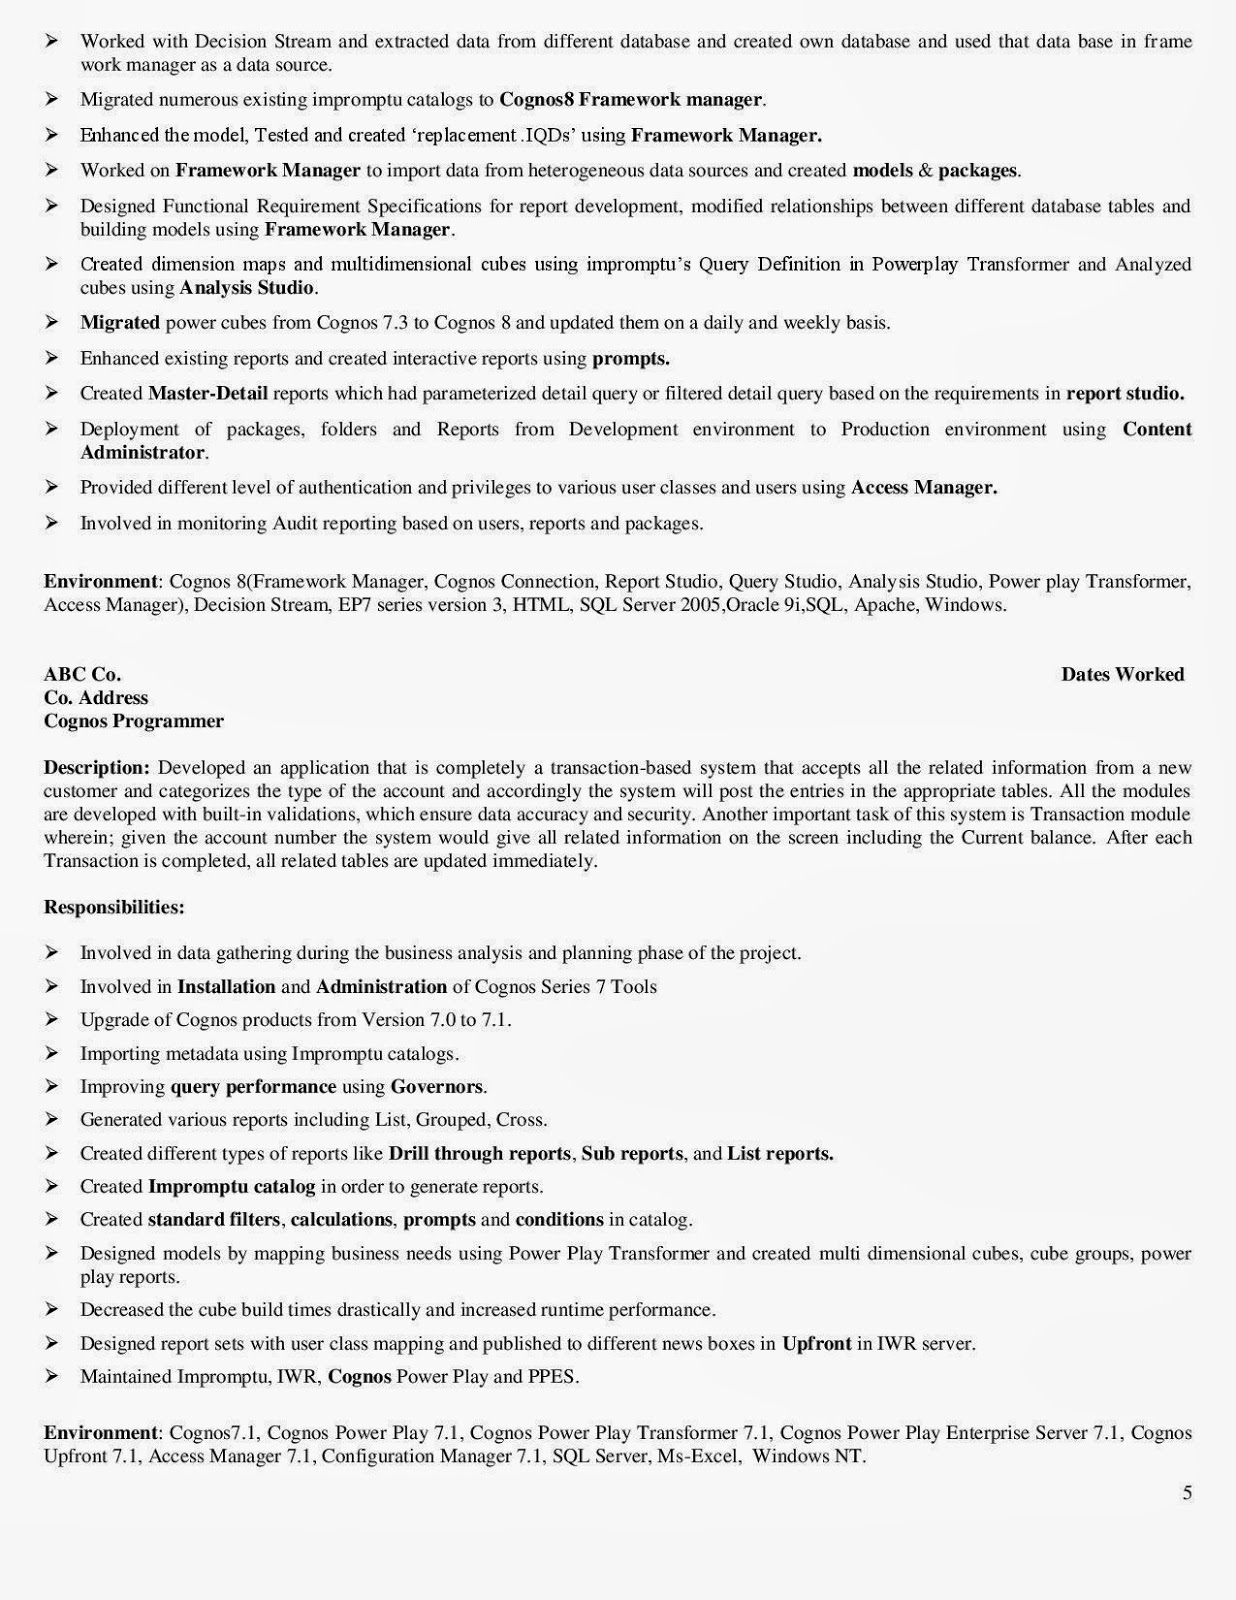 Sample Resume For Quality Assurance Executive How To Complete And Survive A Doctoral Dissertation Resume